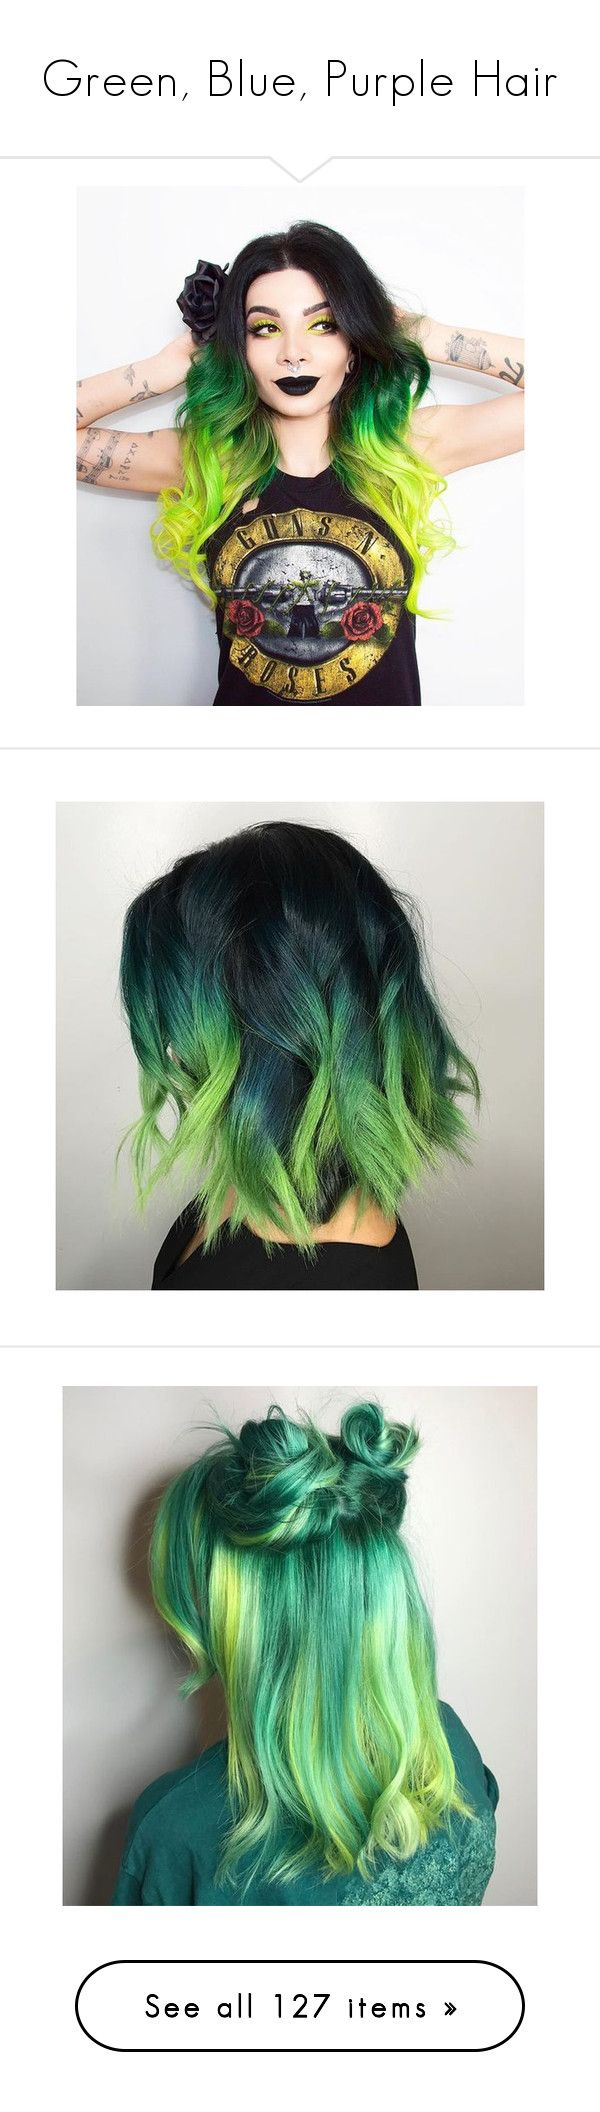 """Green, Blue, Purple Hair"" by starboyawg ❤ liked on Polyvore featuring hair, accessories, hair accessories, teal hair accessories, orange hair accessories, beauty products, haircare, hair color, green hair accessories and girls"